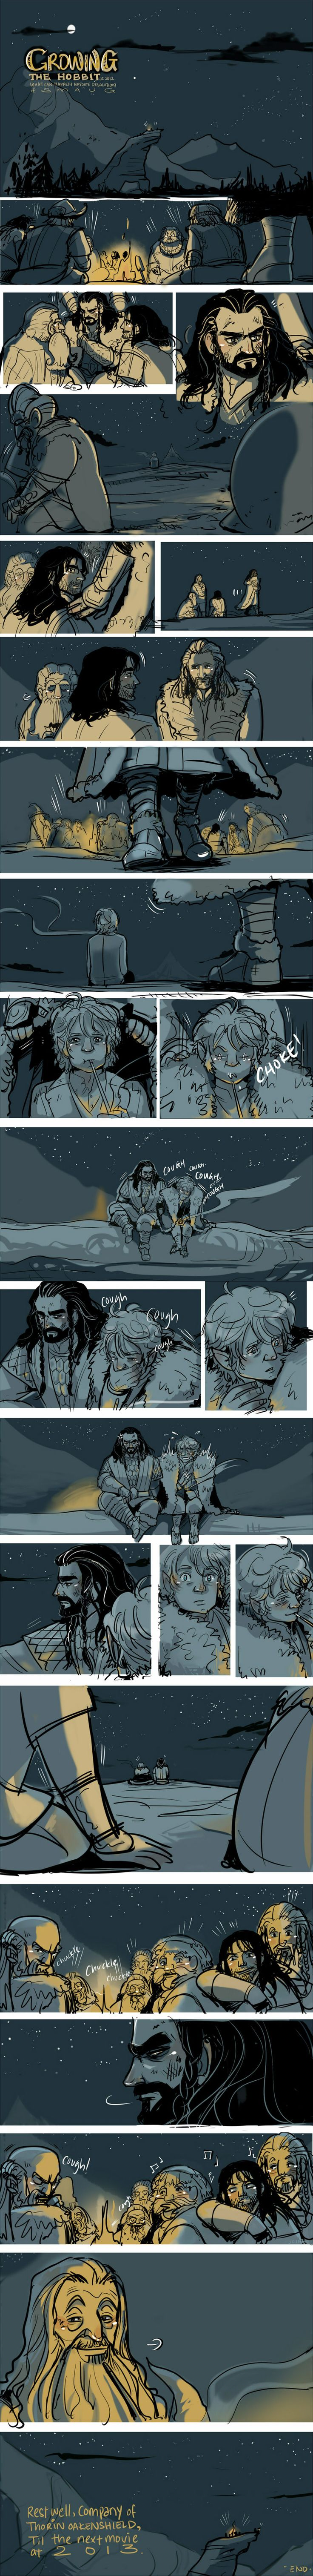 The Hobbit: Growing by ~applepie1989 on deviantART  Rest well, company of Thorin Oakenshield.